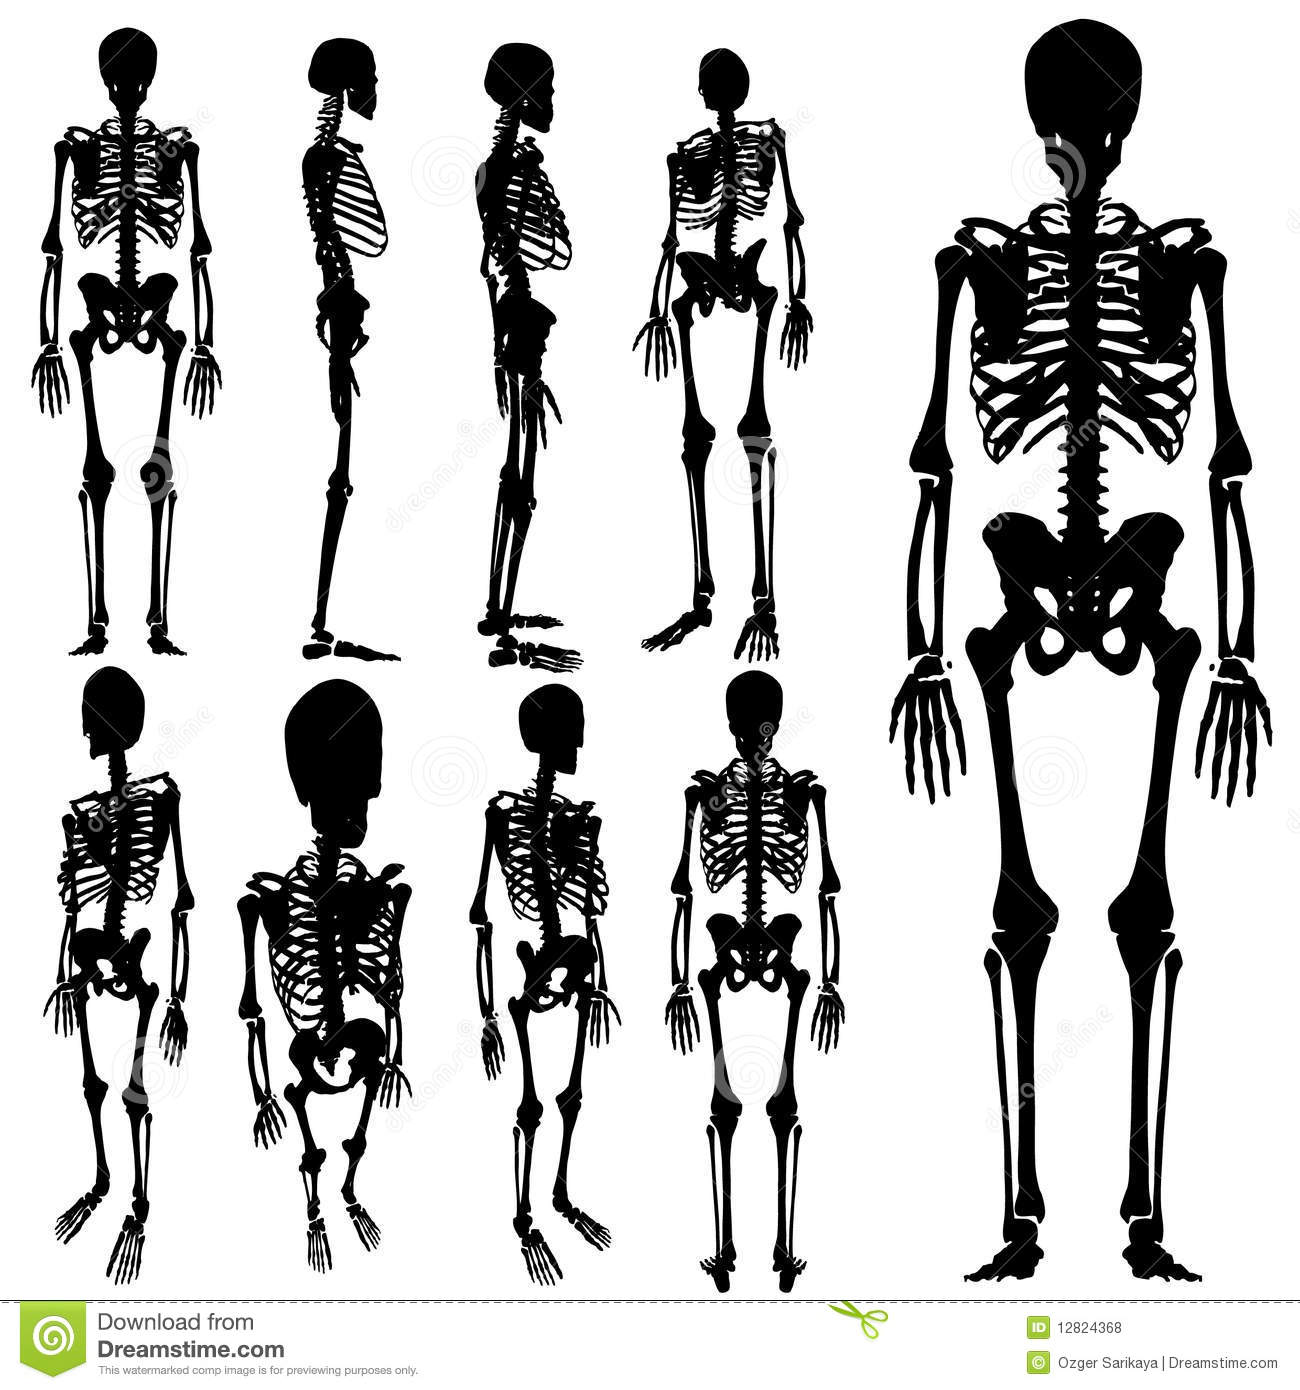 skeleton silhouette skeleton silhouette clipart 20 free cliparts download silhouette skeleton